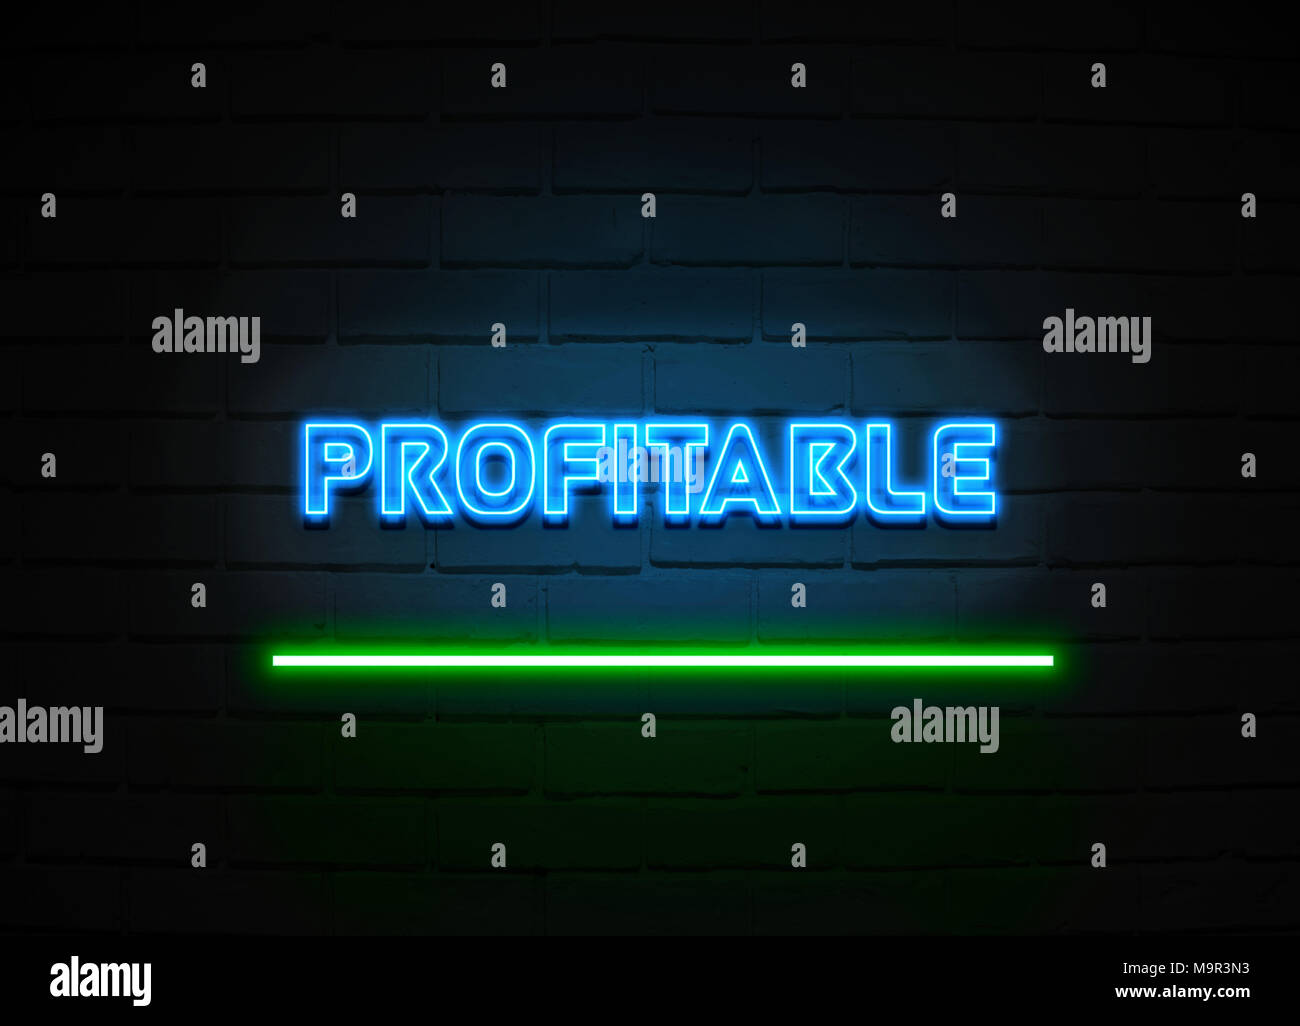 Profitable neon sign - Glowing Neon Sign on brickwall wall - 3D rendered royalty free stock illustration. - Stock Image